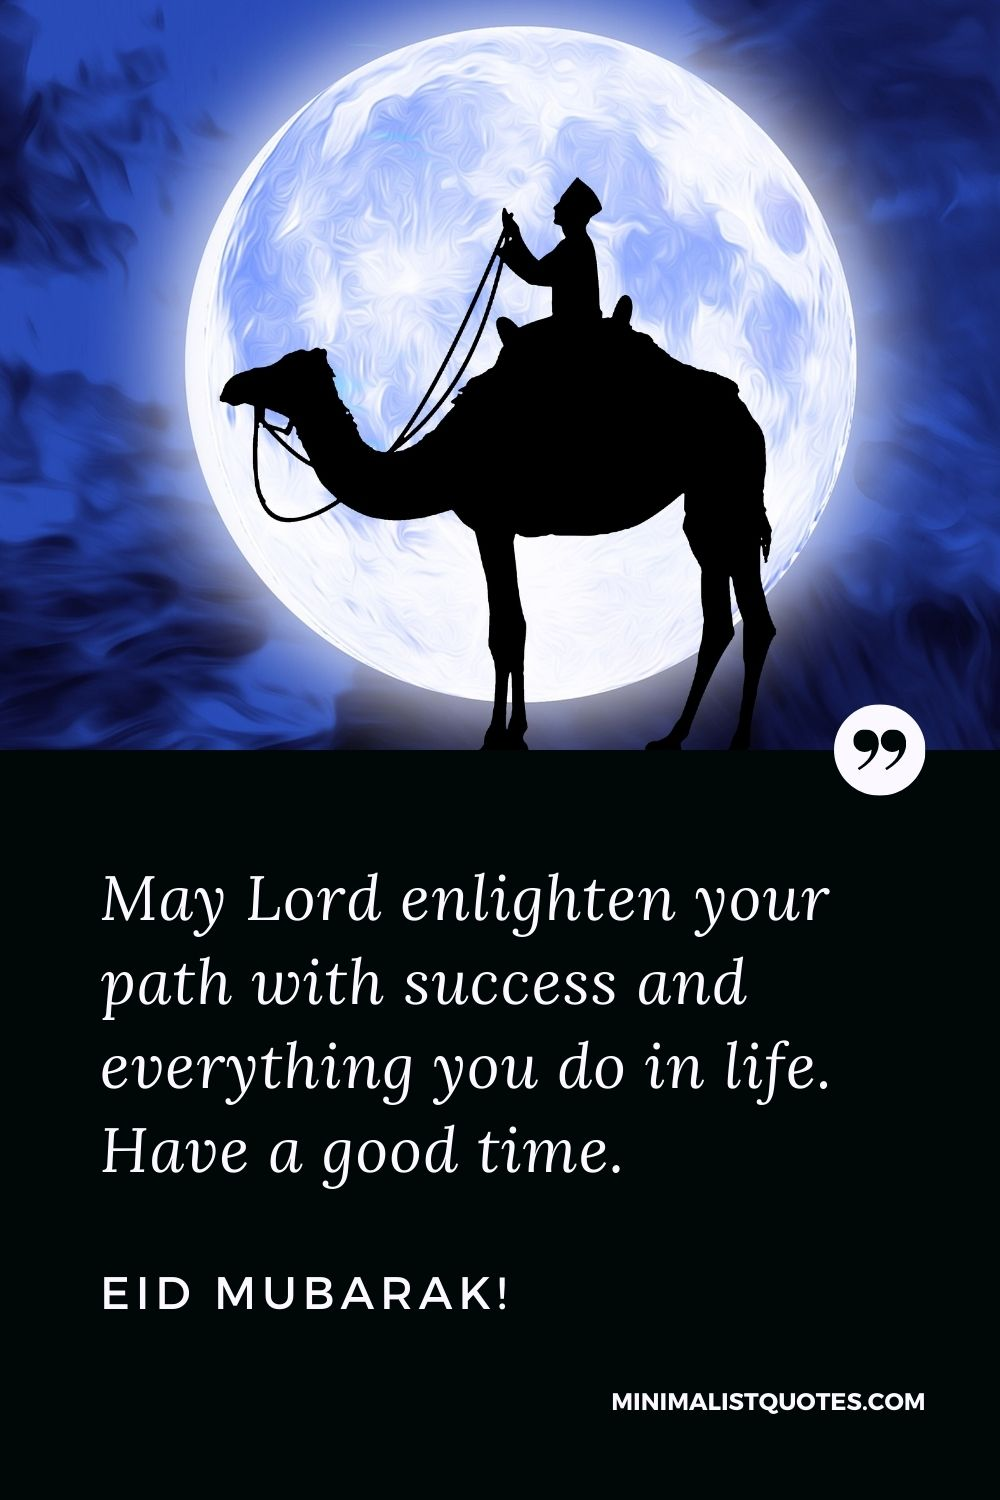 Eid al-Fitr Quote, Wish & Message With Image: May Lord enlighten your path with success and everything you do in life. Have a good time. Eid Mubarak!